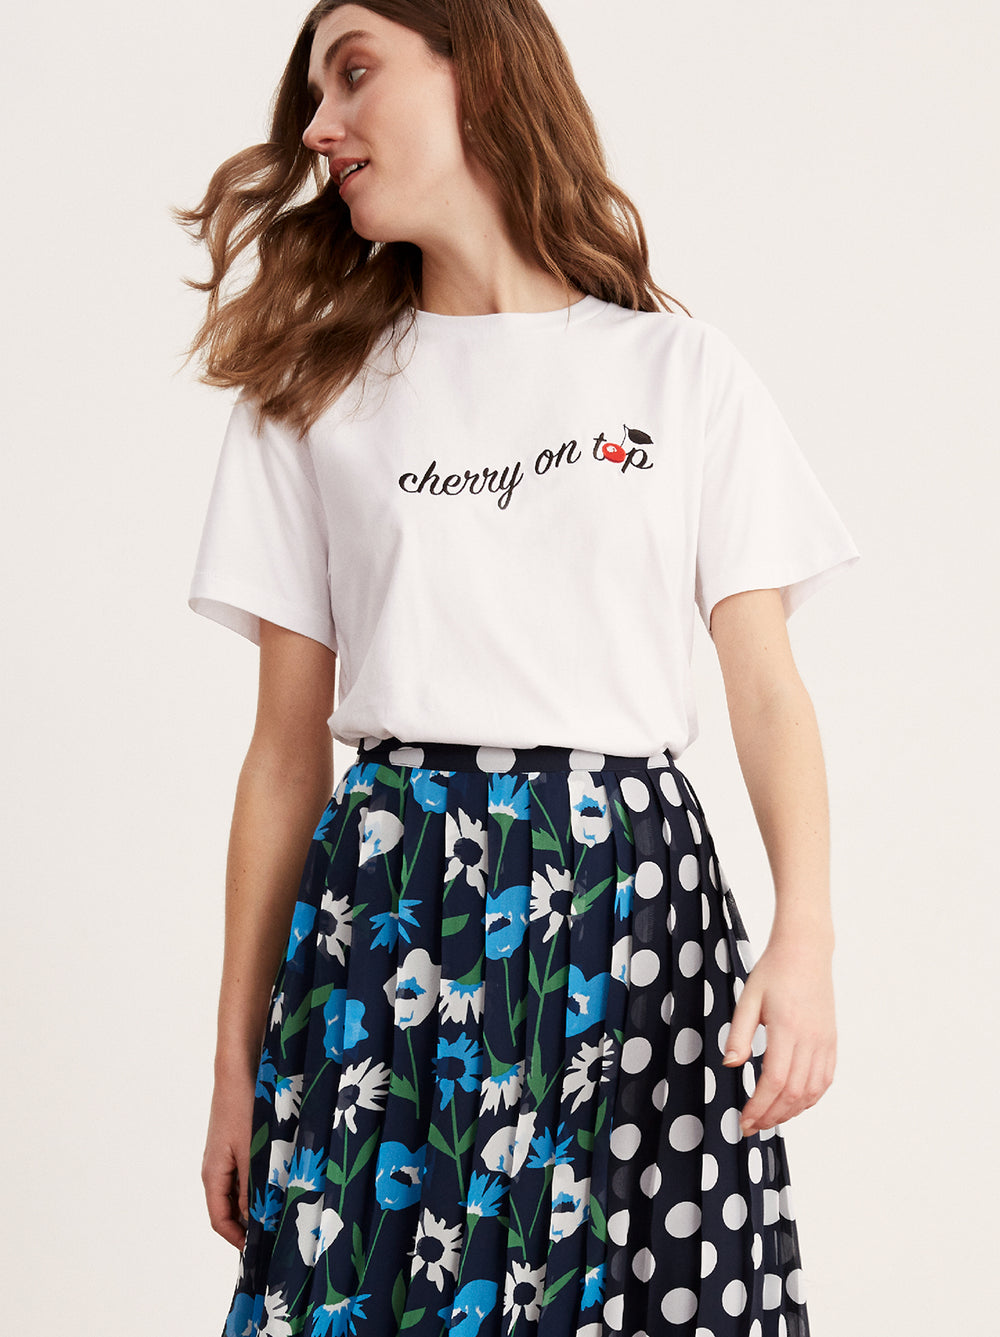 Cherry on Top White Embroidered Cotton T-shirt by KITRI Studio